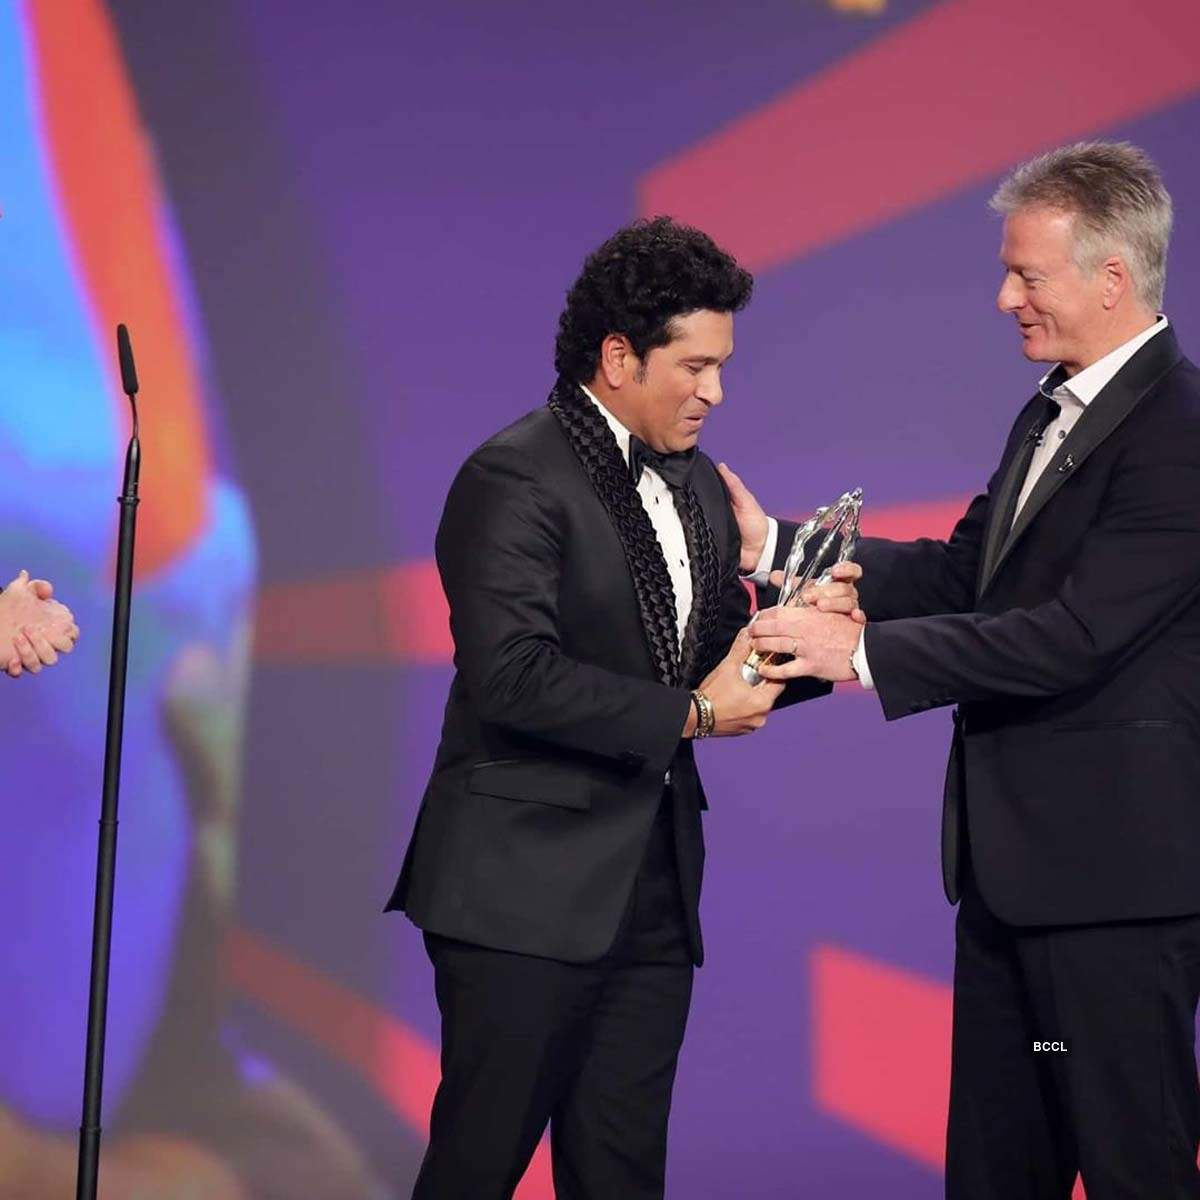 Sachin Tendulkar becomes first Indian to win Laureus World Sports Award